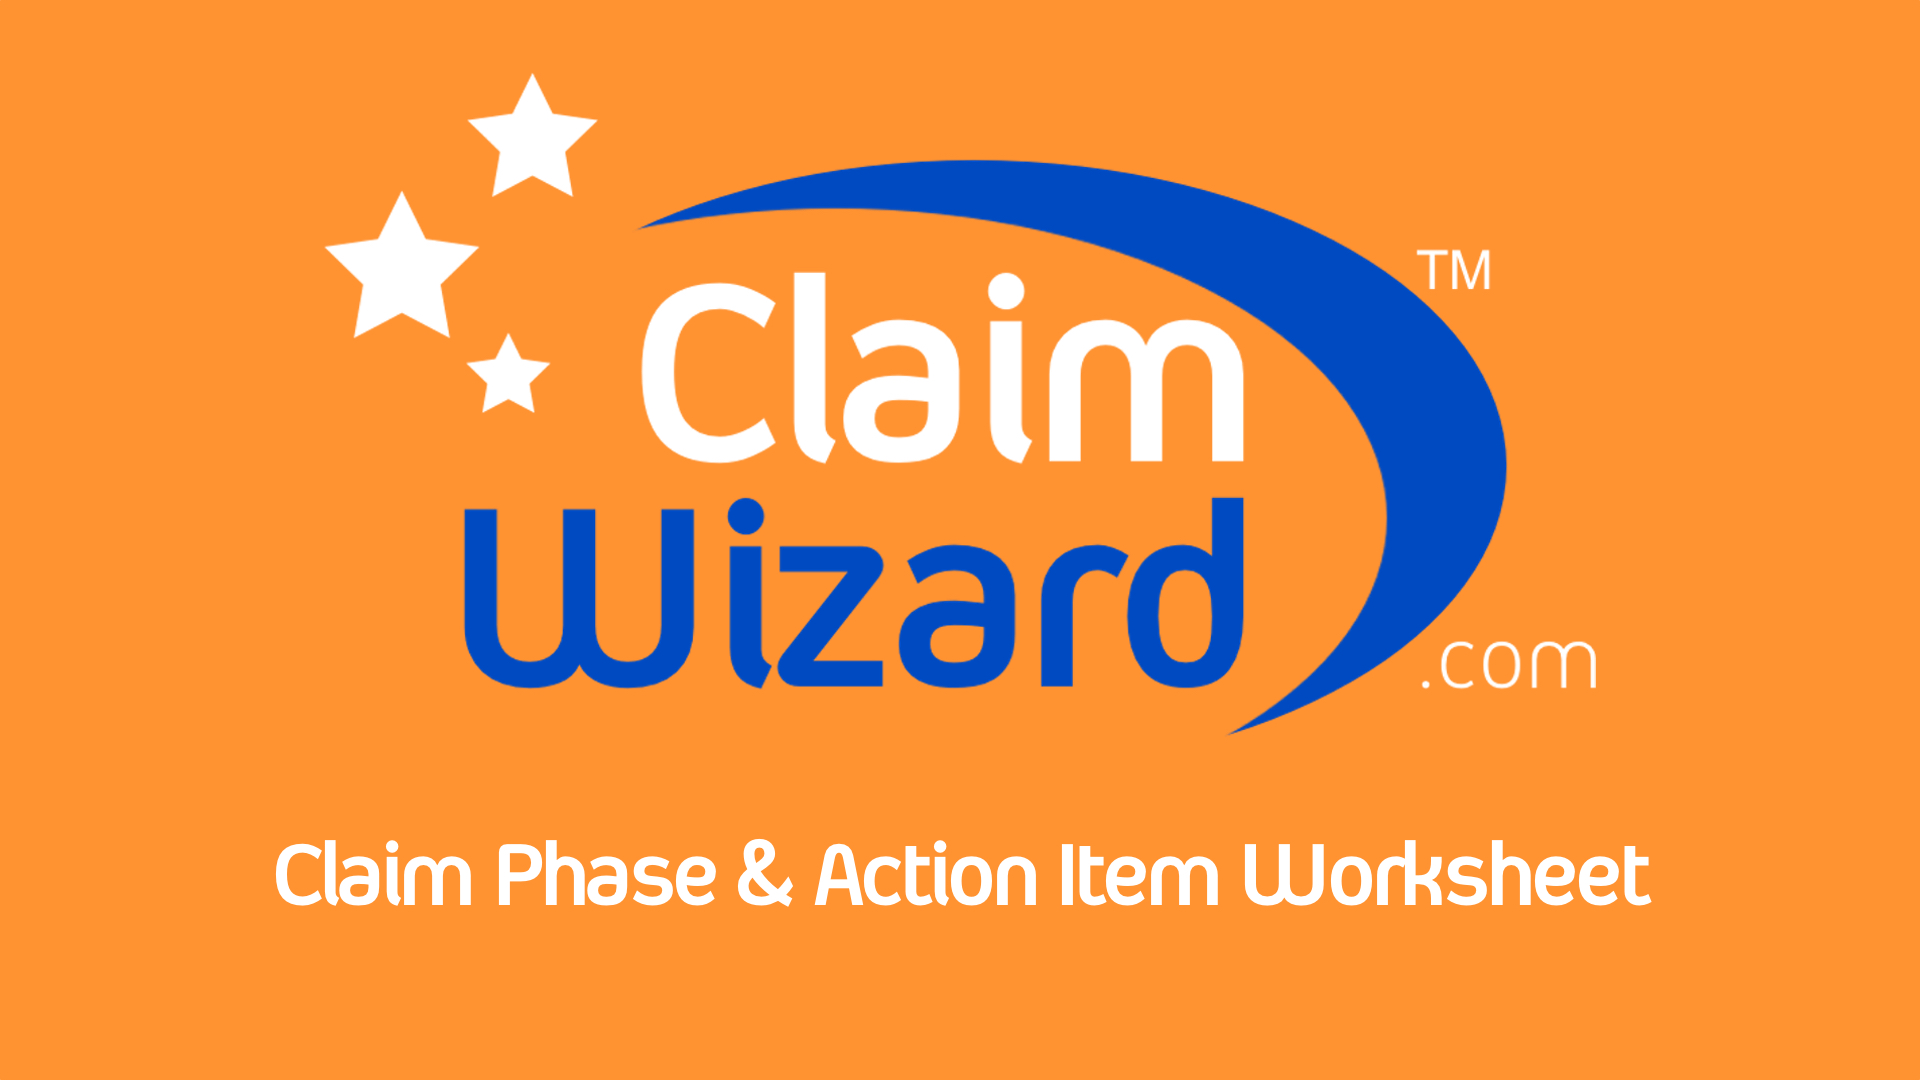 Claim Phase & Action Item Worksheet